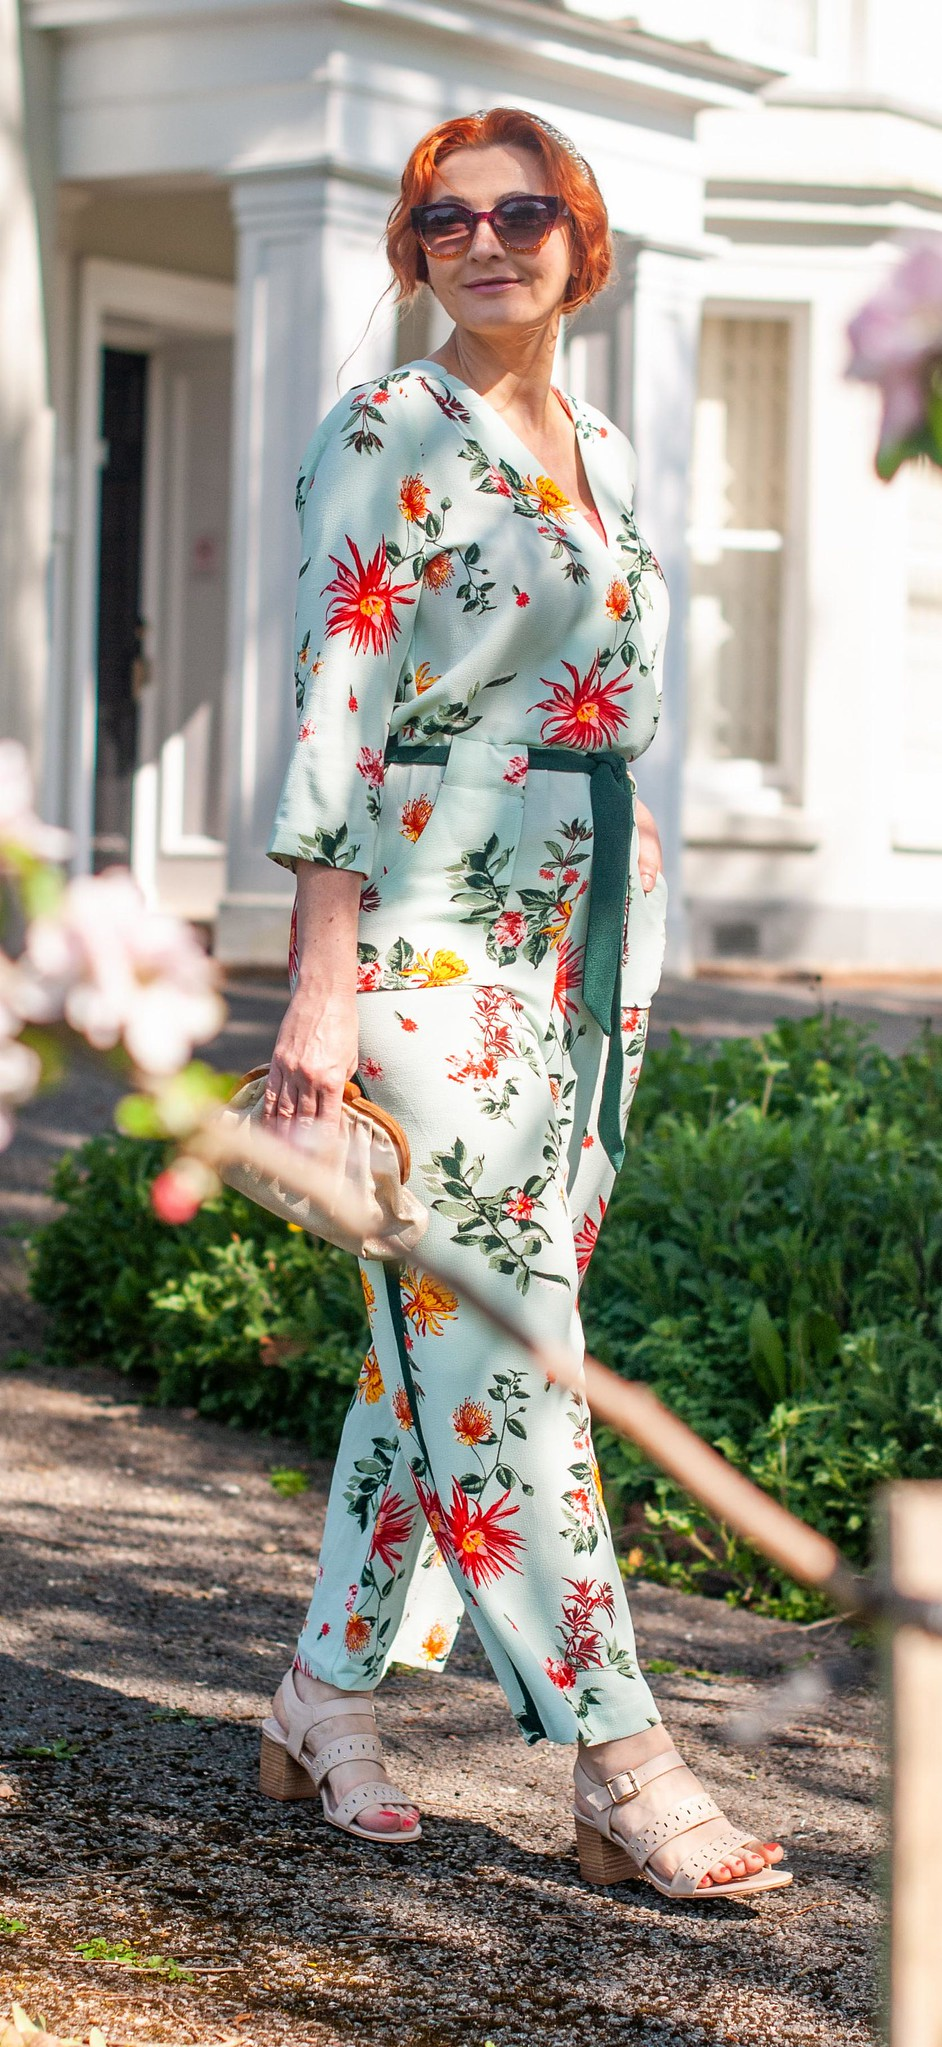 Over 40 Fashion: The Jumpsuit and Nude Sandals All Your Weddings and Garden Parties Can't Do Without This Summer | Not Dressed As Lamb